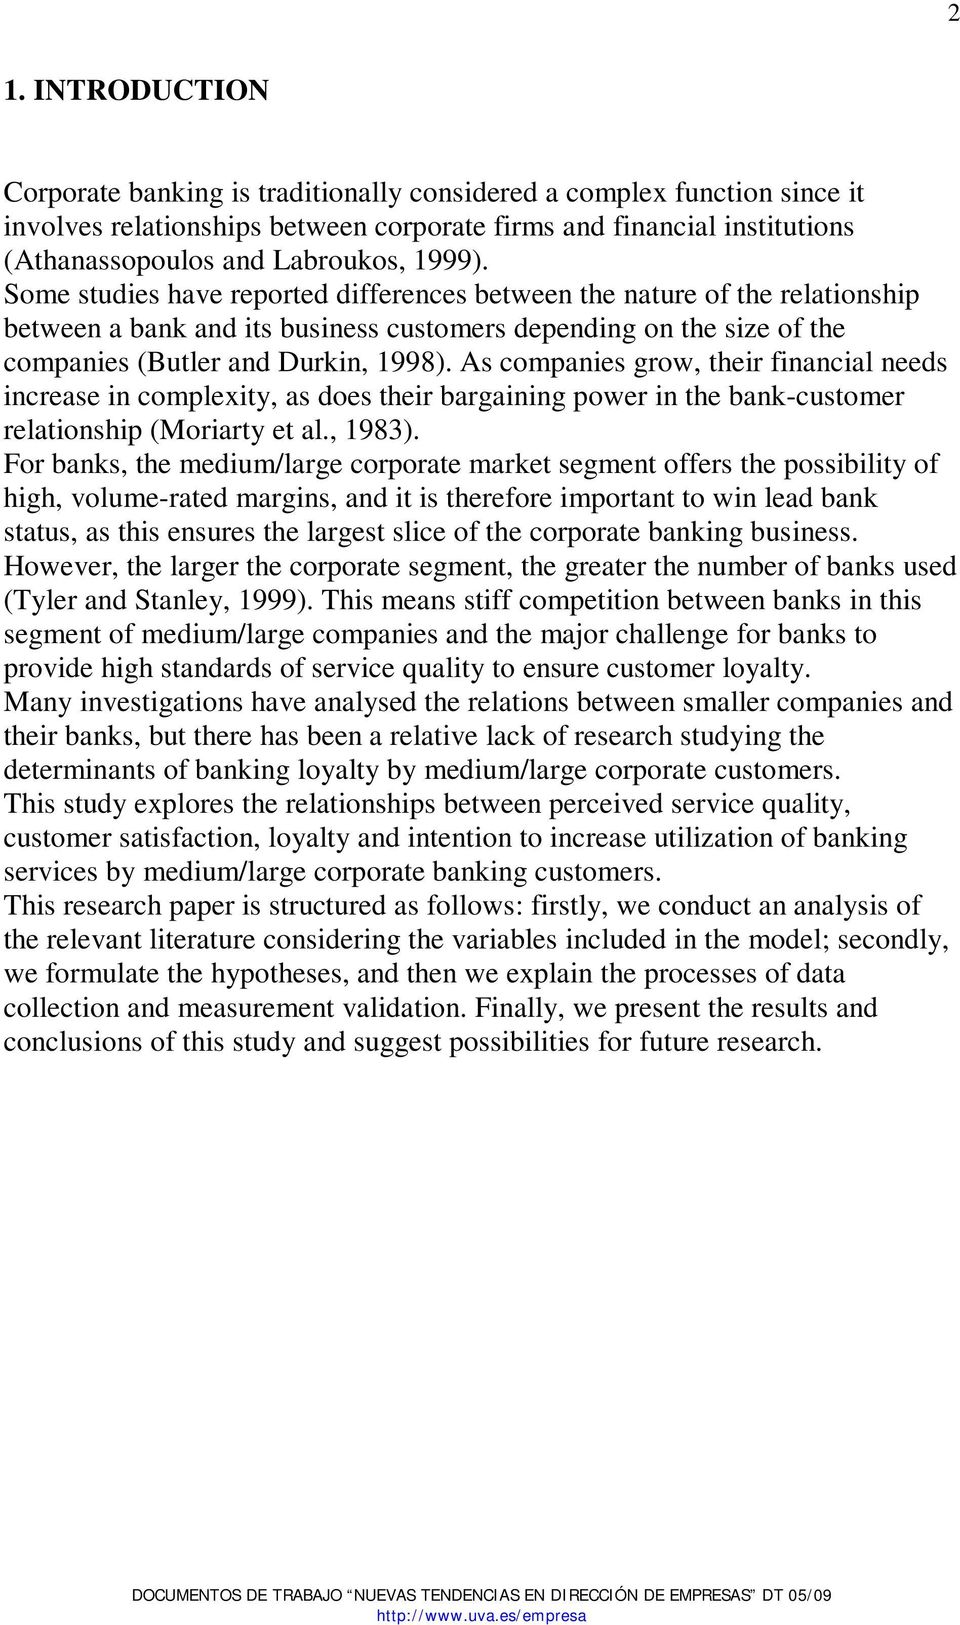 As companies grow, their financial needs increase in complexity, as does their bargaining power in the bank-customer relationship (Moriarty et al., 1983).